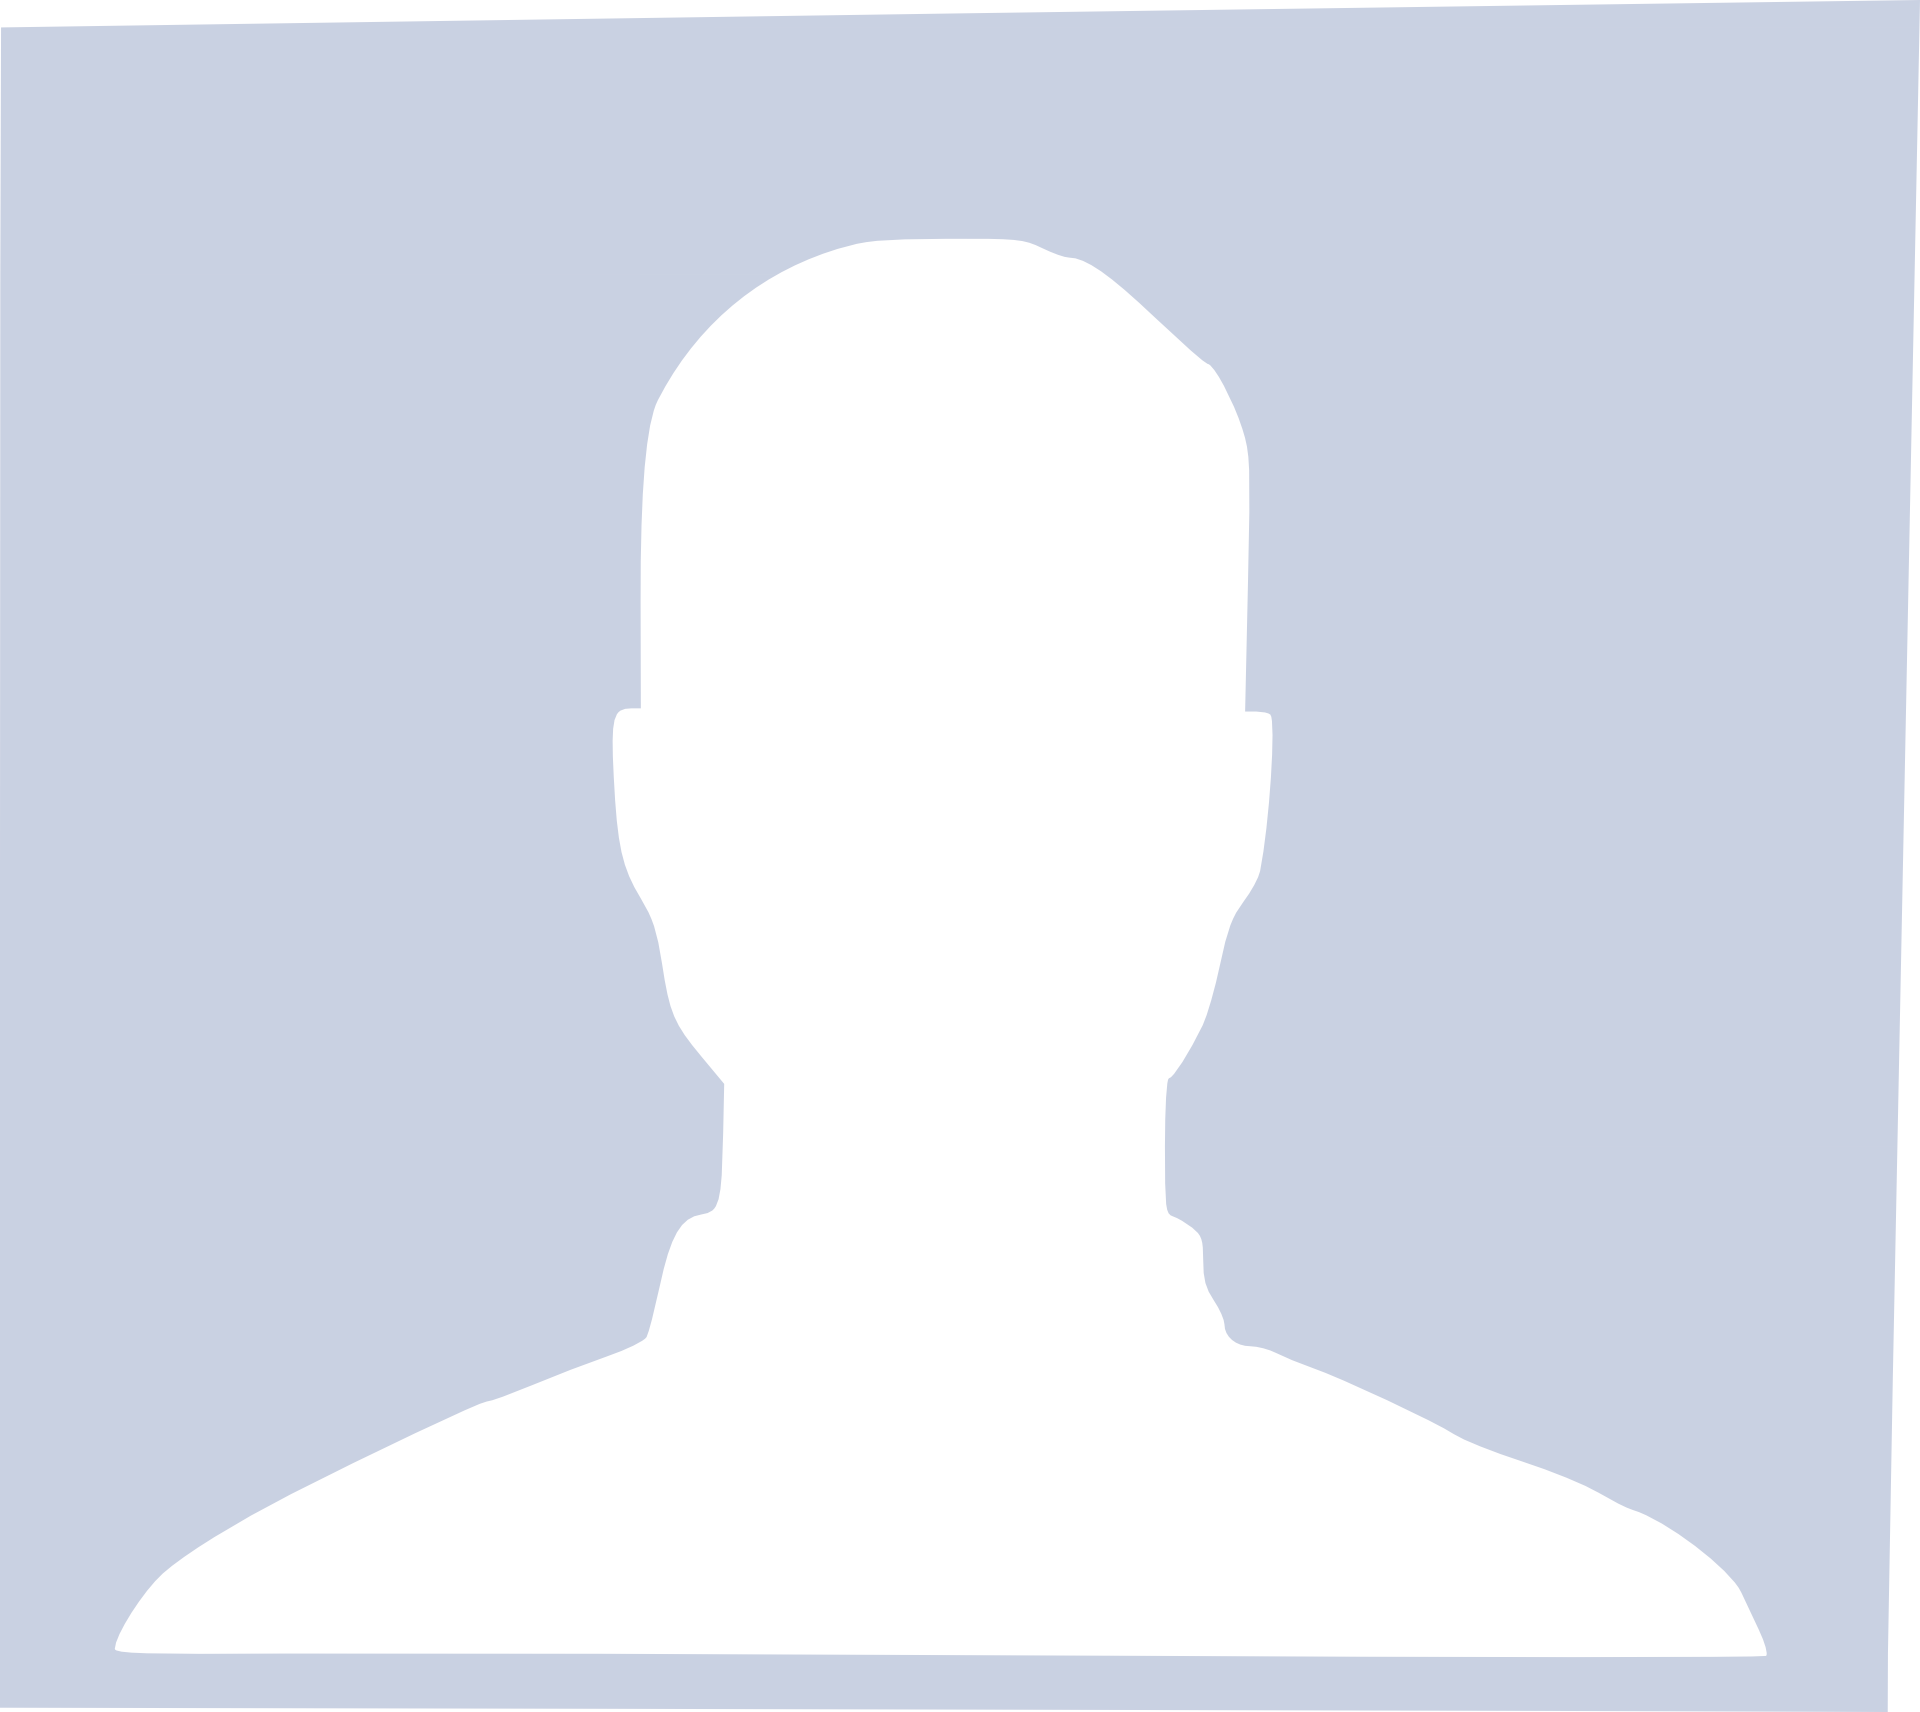 Placeholder image for user with no profile picture - silhouette of male person